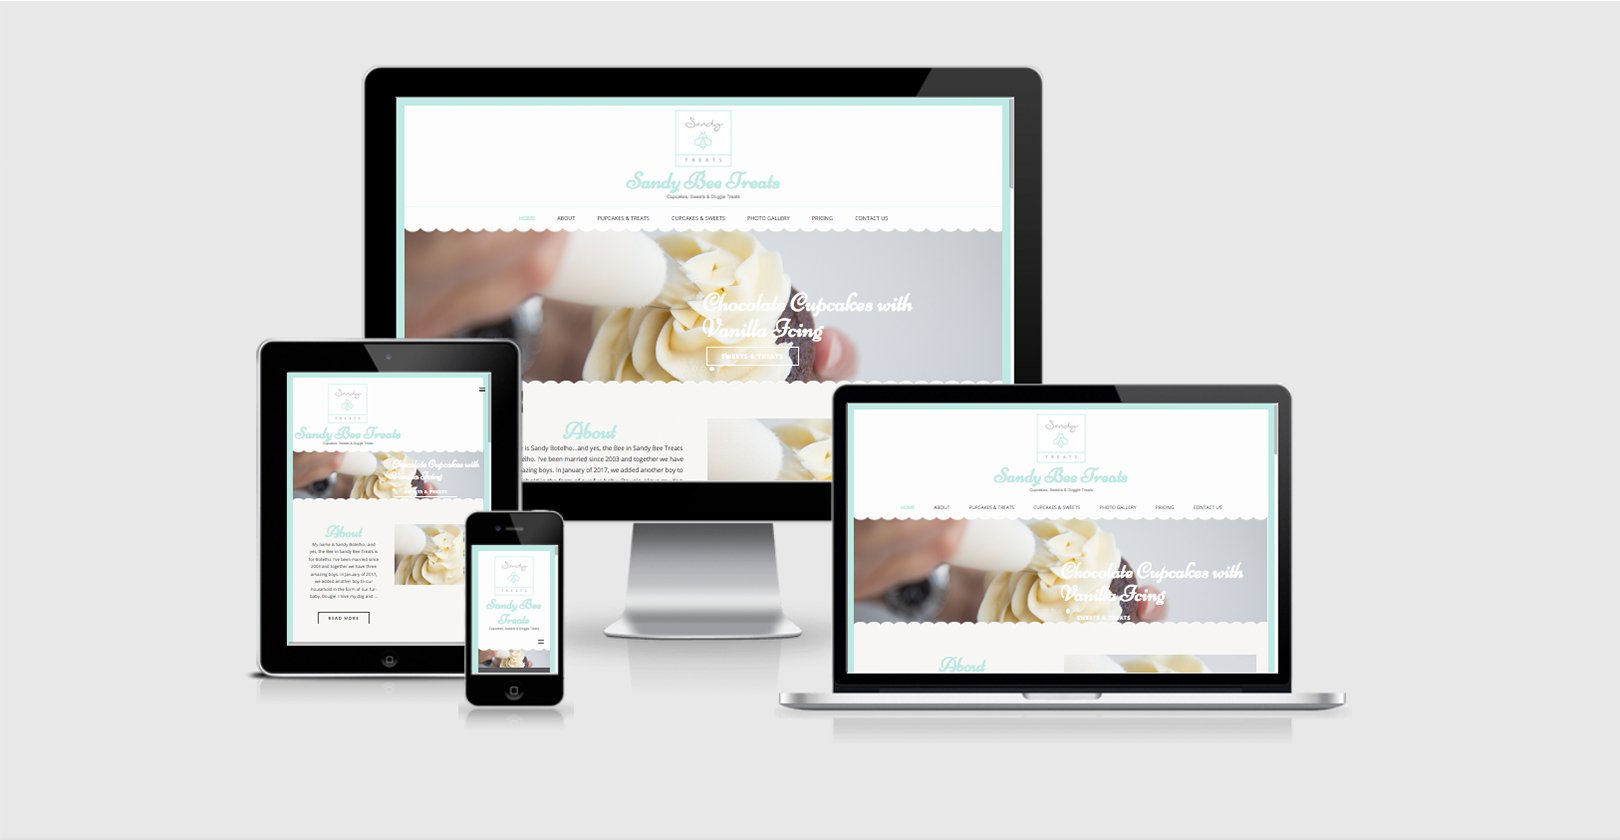 Website Design – Sandy Bee Treats